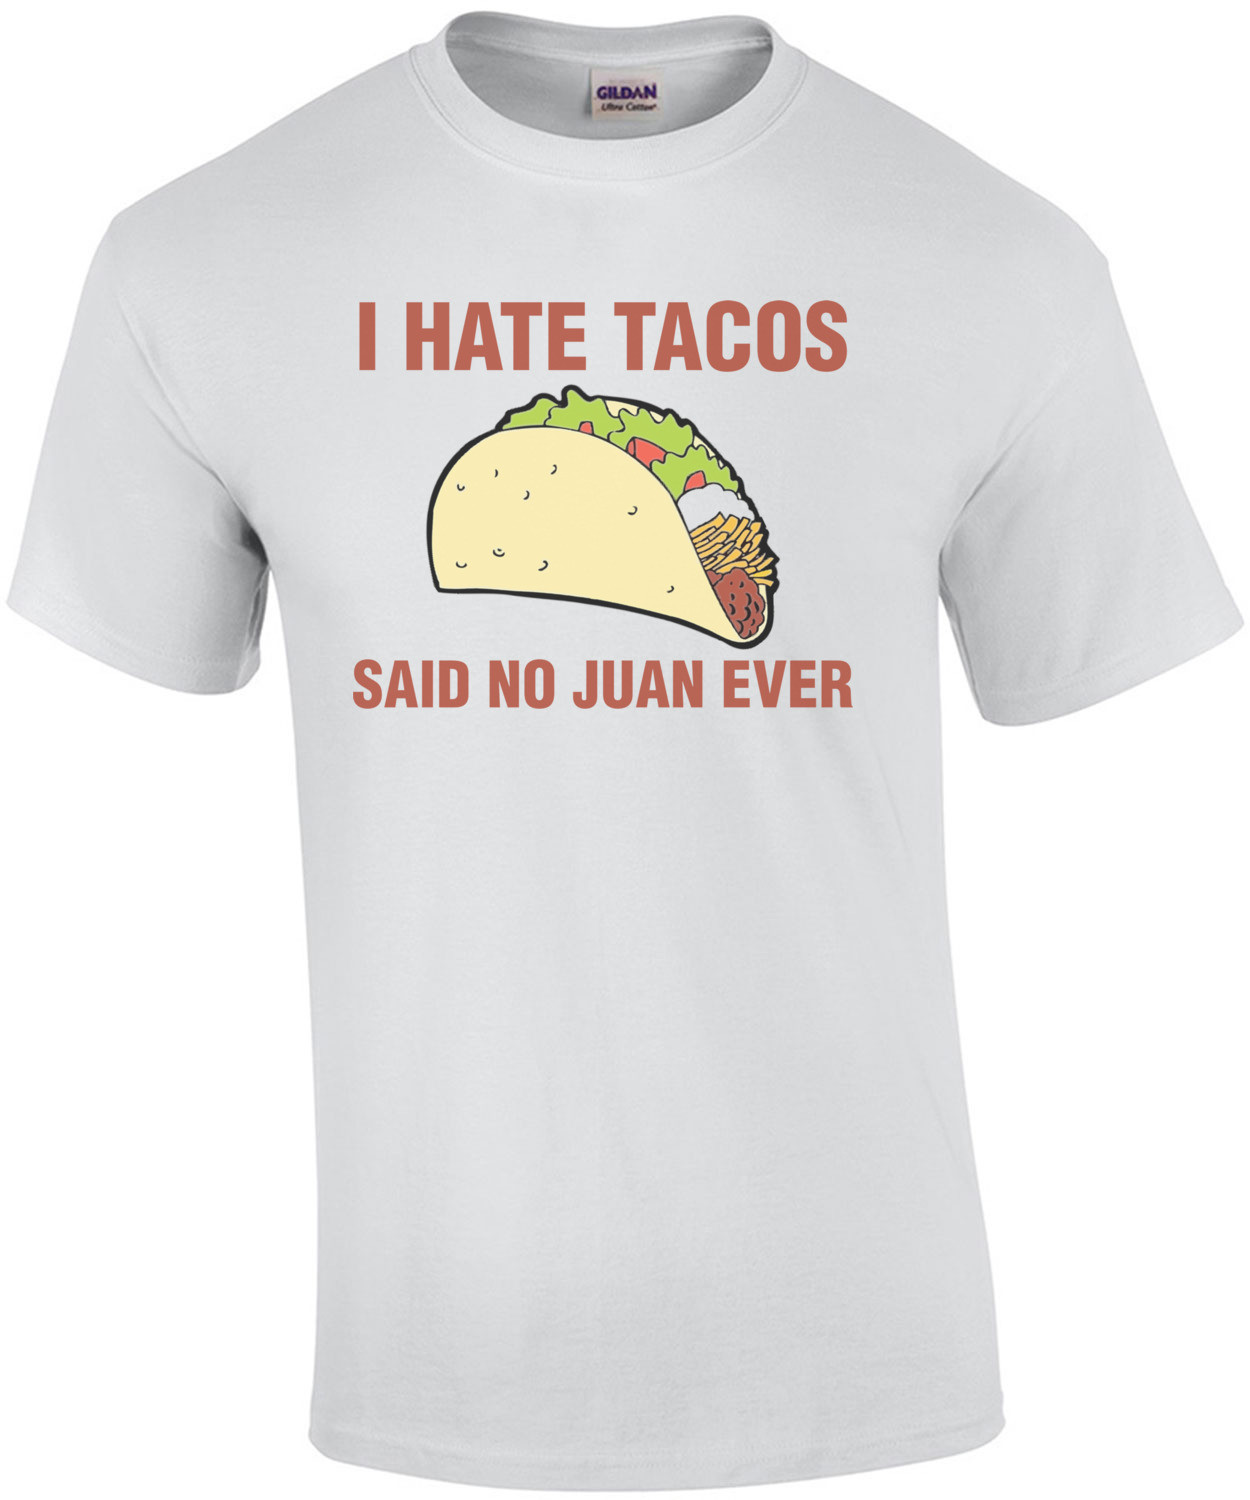 I Hate Tacos, Said No Juan Ever Shirt